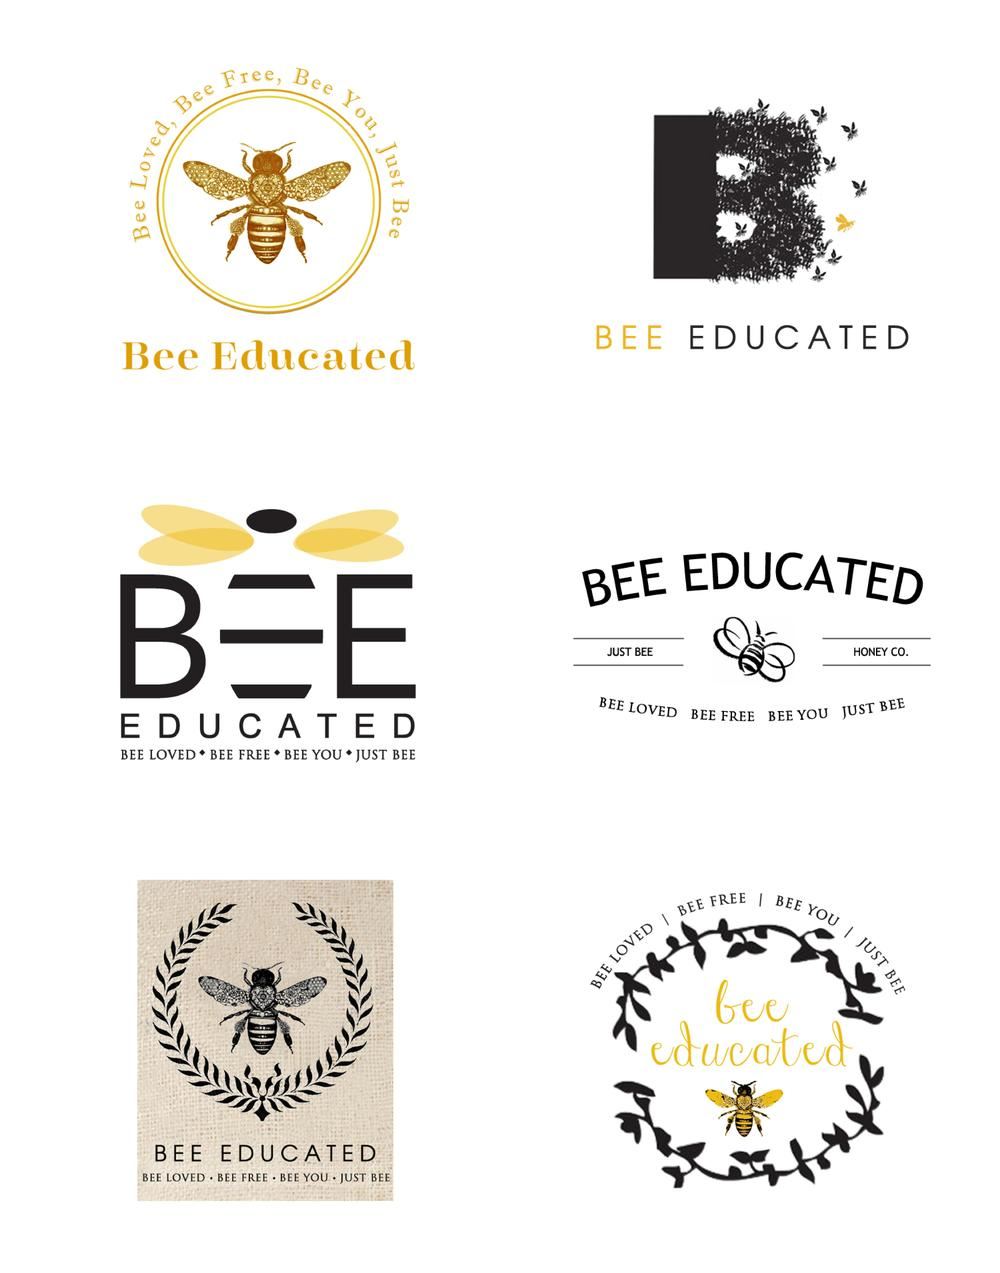 Here's a sample of what one round of logo iterations look like. With your feedback we narrow down the selection and make small changes.